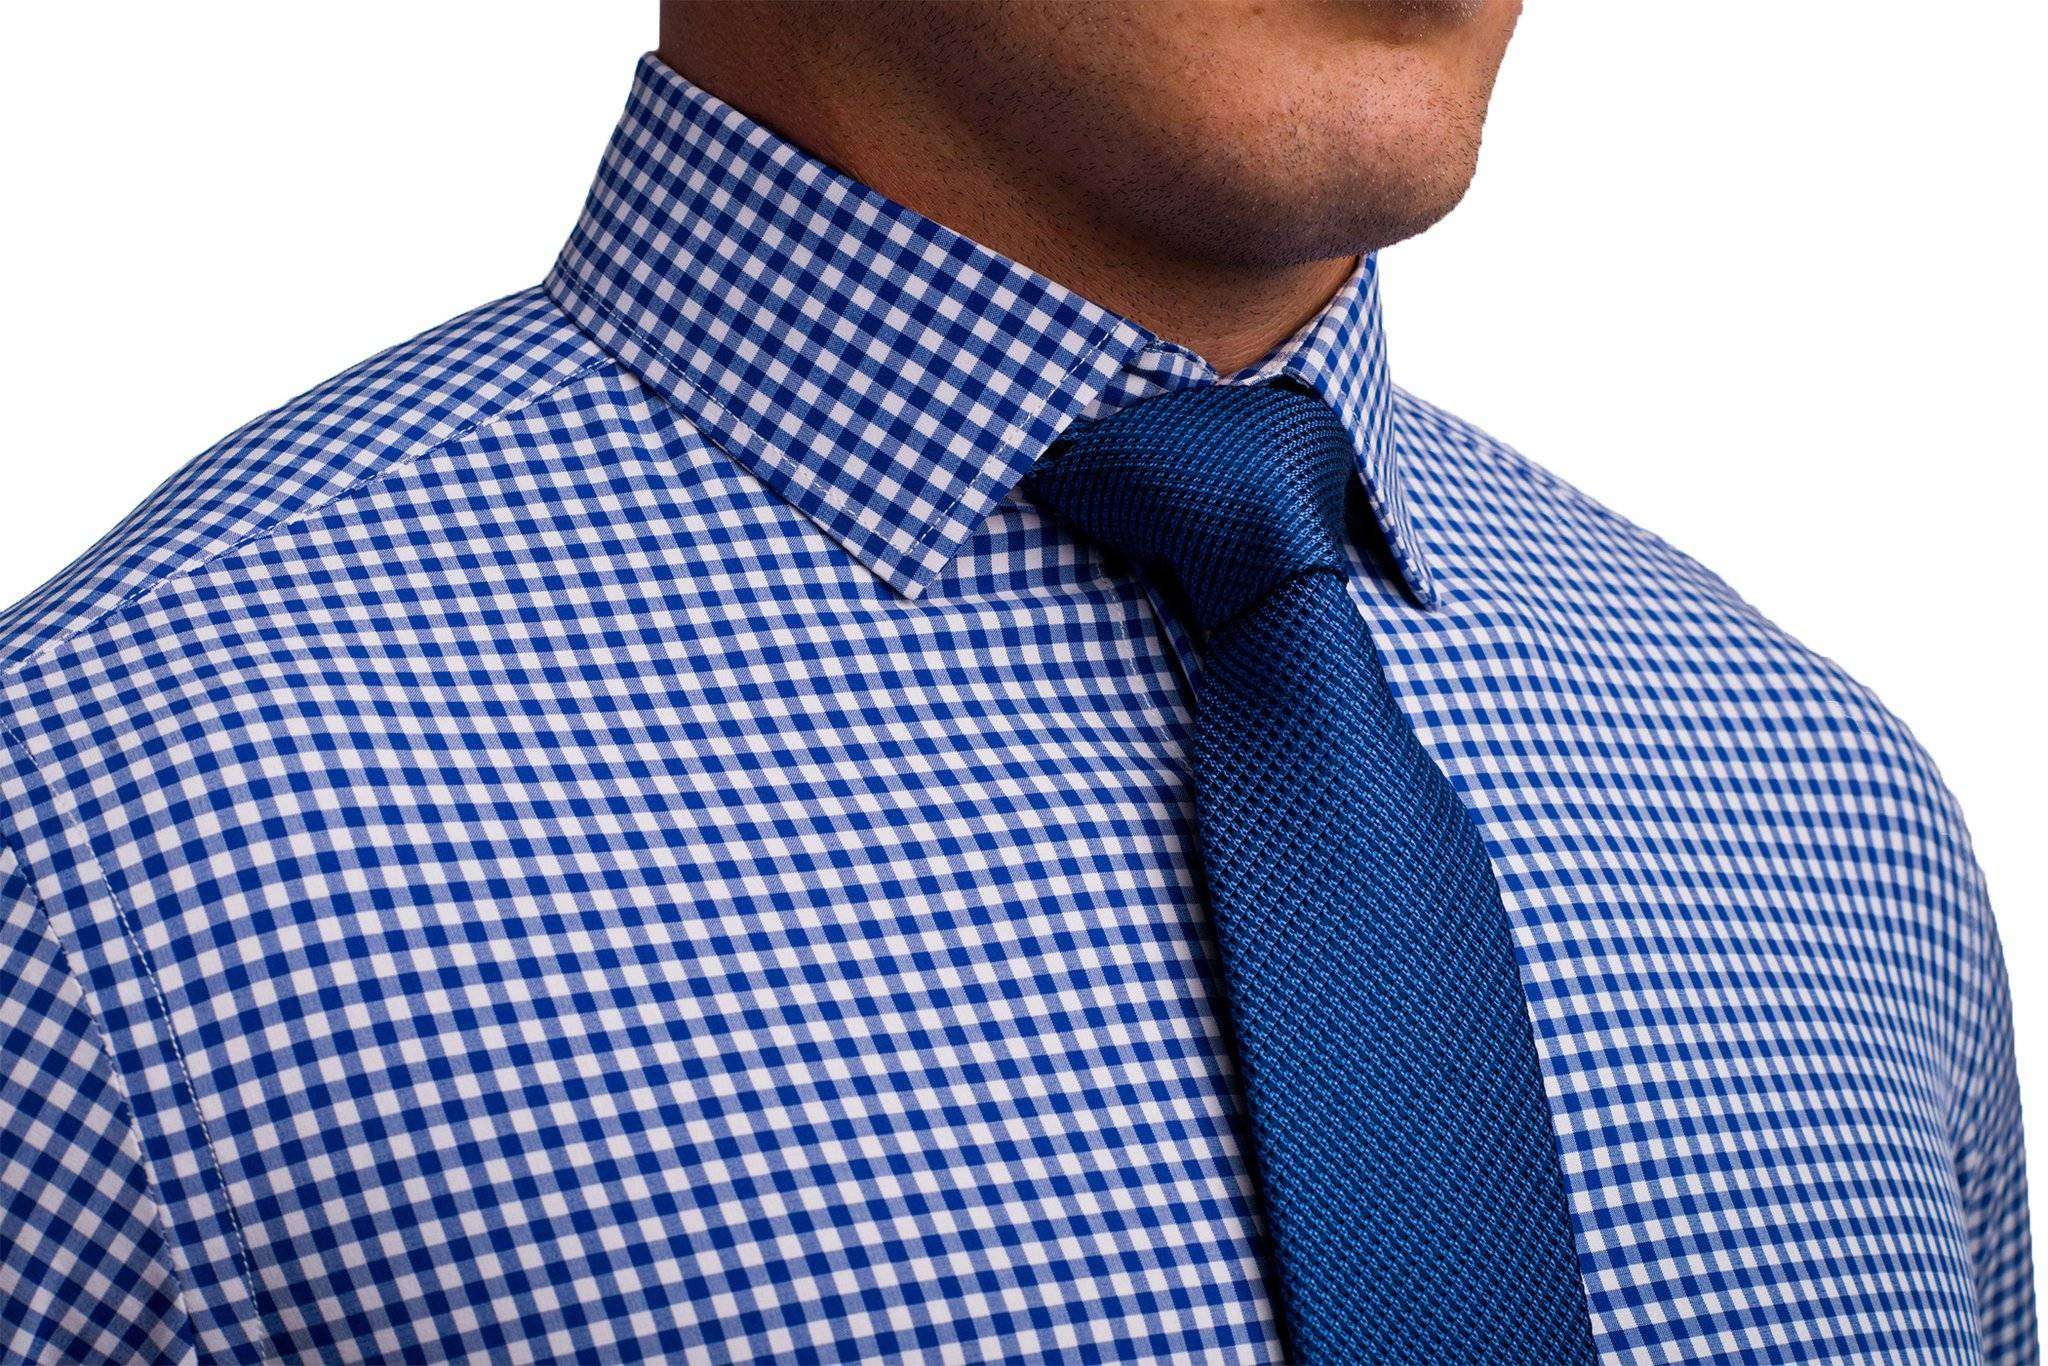 Athletic Fit Vs Slim Fit Dress Shirts What S The Difference